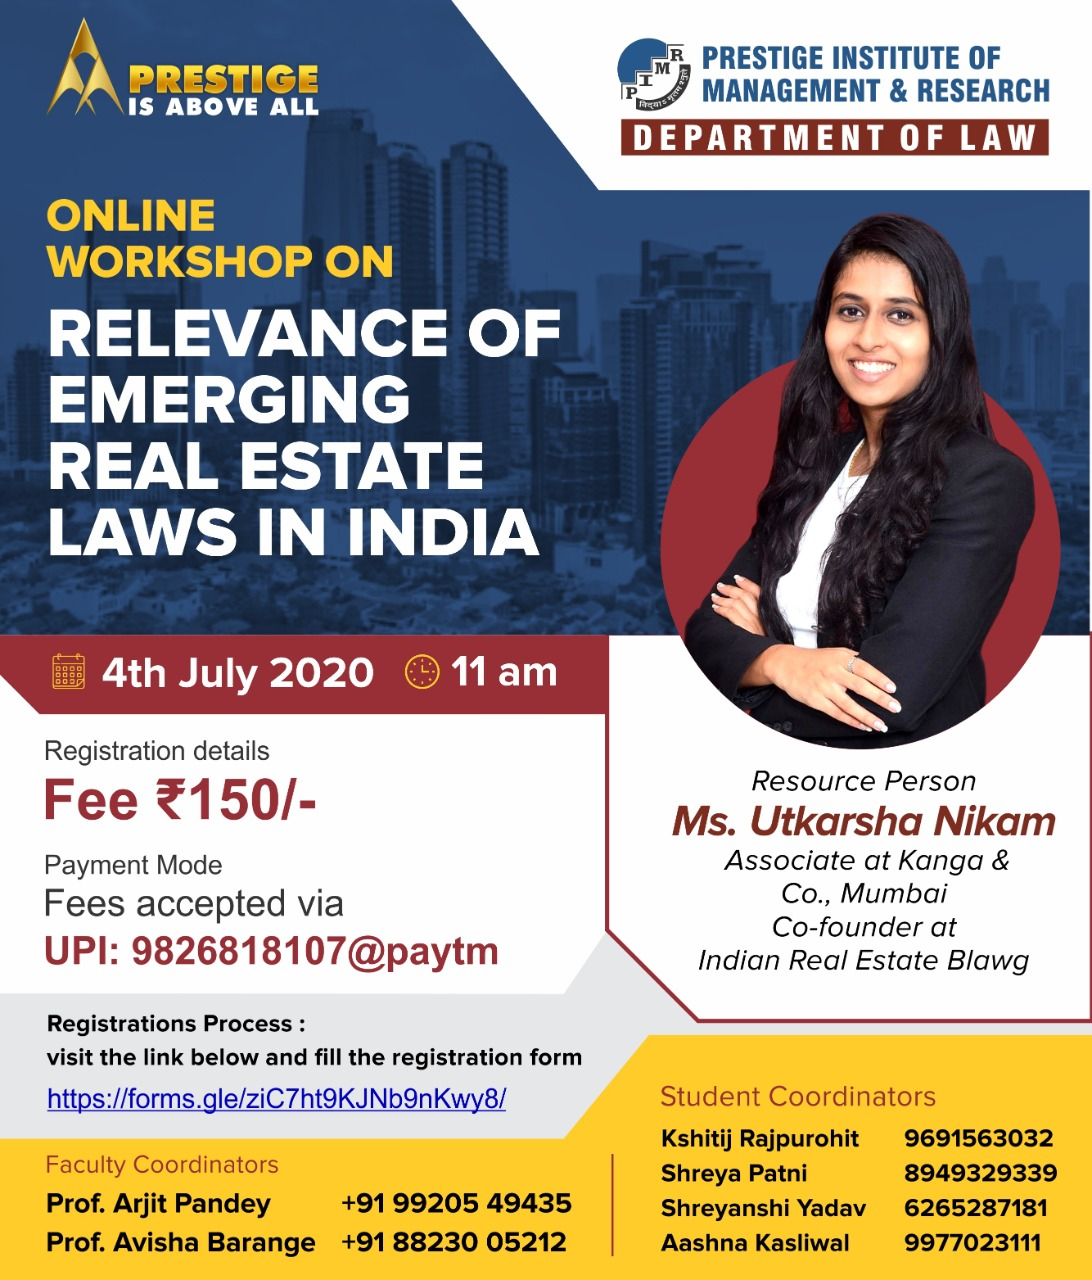 Workshop on Relevance of Emerging Real Estate Laws in India by PIMR, Indore